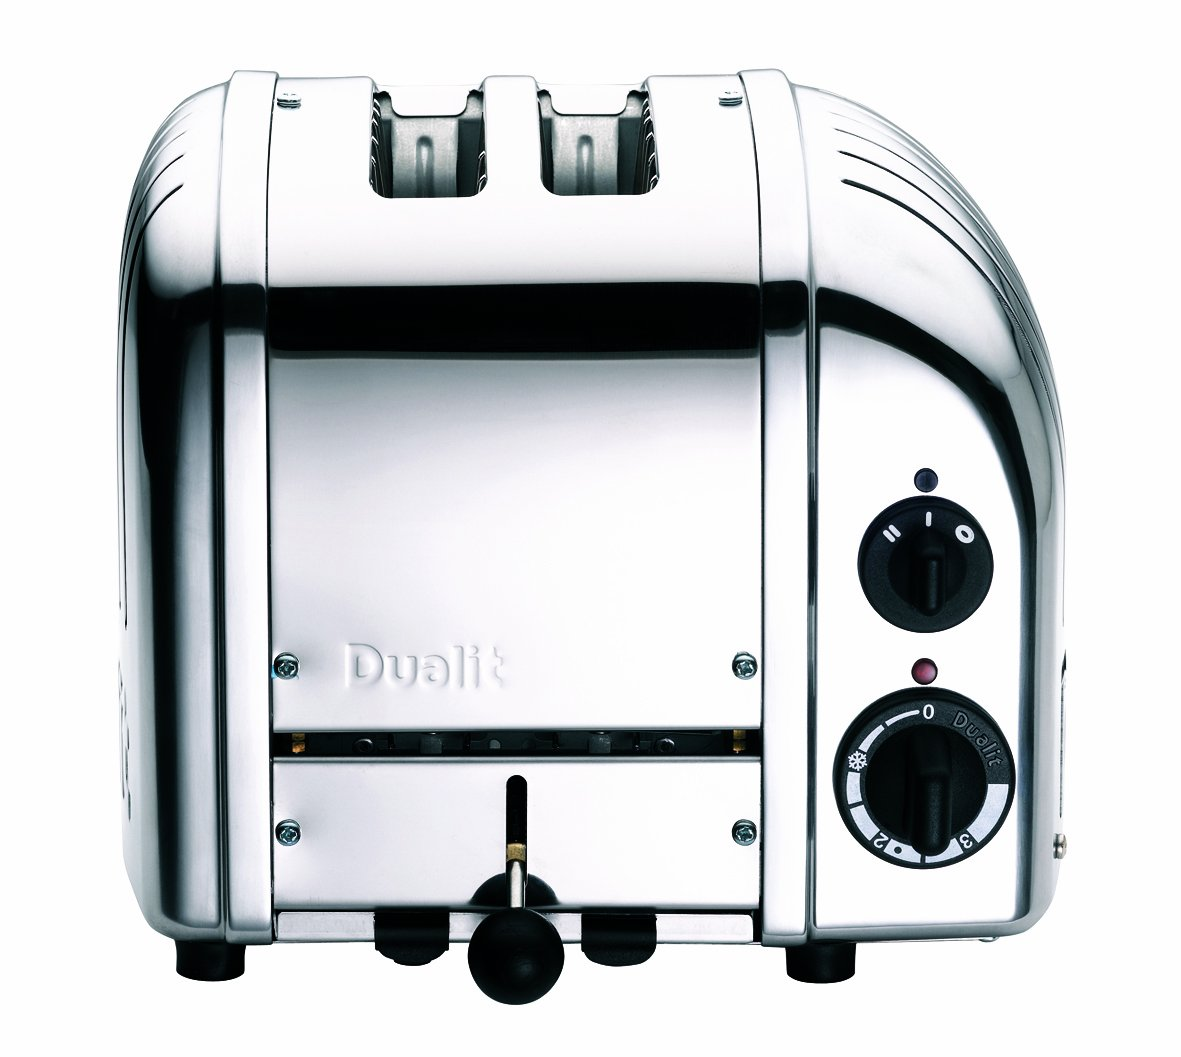 Dualit 2-Slice Toaster, Chrome